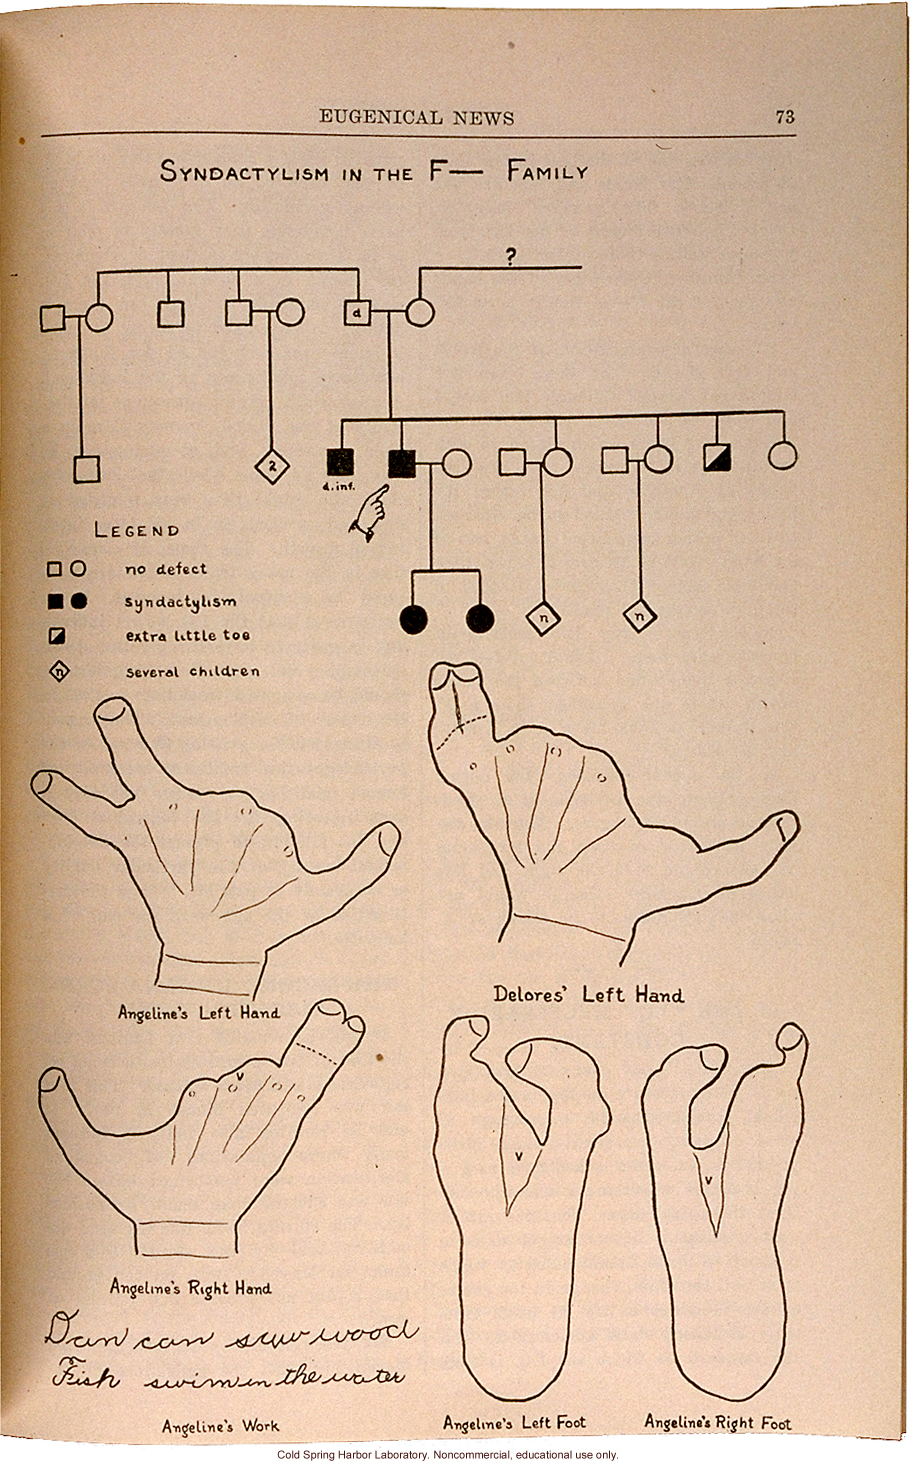 &quote;Syndactyly in the F__ Family,&quote; Eugenical News (vol. 15), fused fingers or toes -- later shown to be an autosomal dominant trait